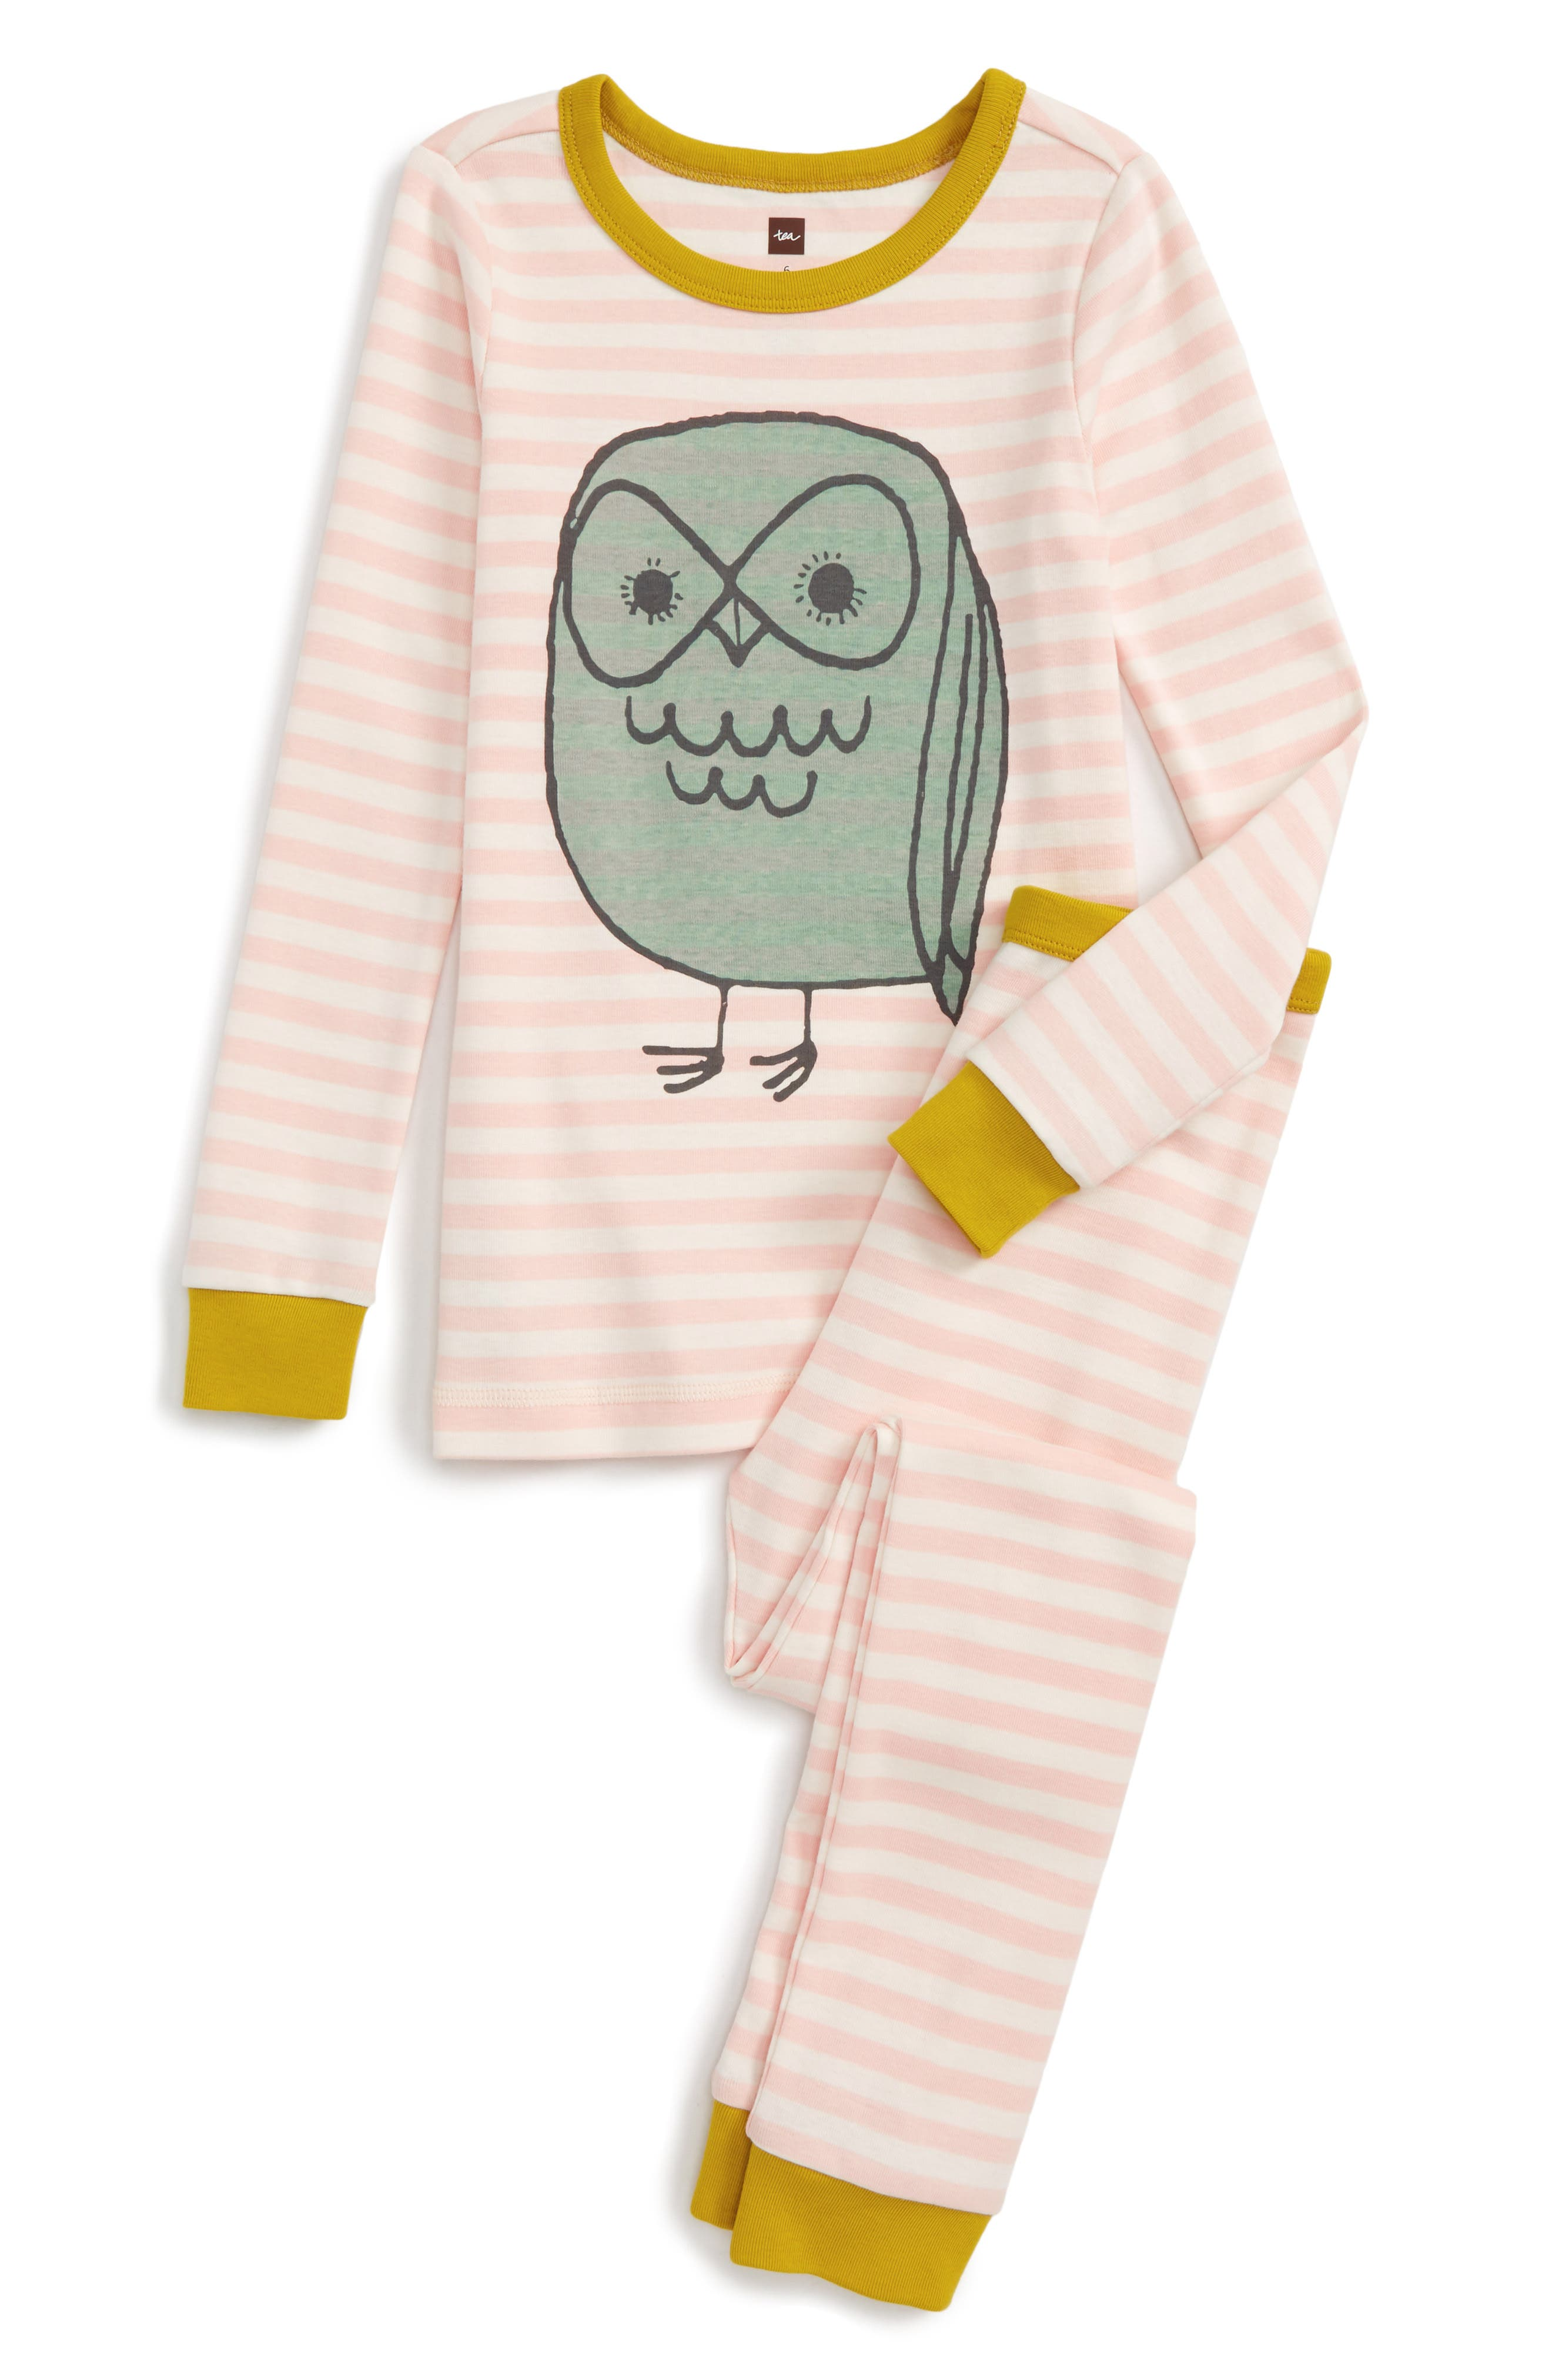 Main Image - Tea Collection Tawny Owl Fitted Two-Piece Pajamas (Toddler Girls, Little Girls & Big Girls)